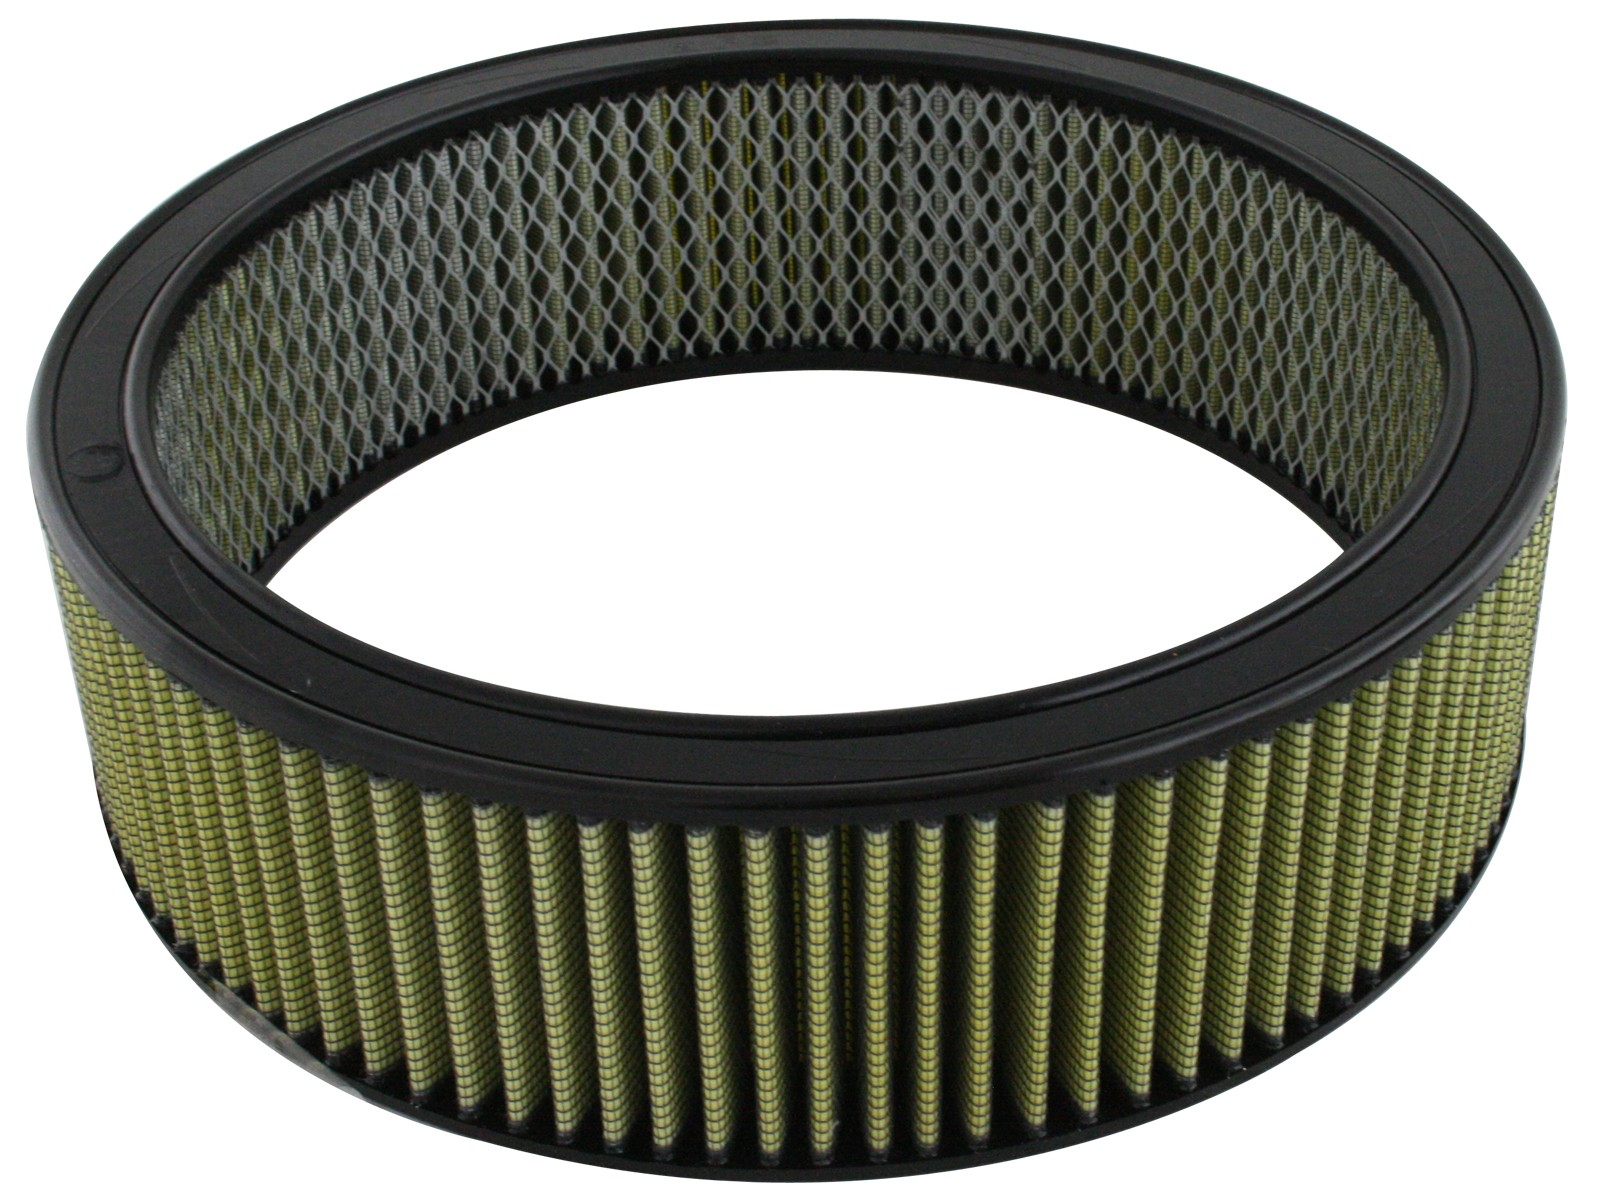 aFe POWER 71-20013 Magnum FLOW Pro GUARD7 Air Filter